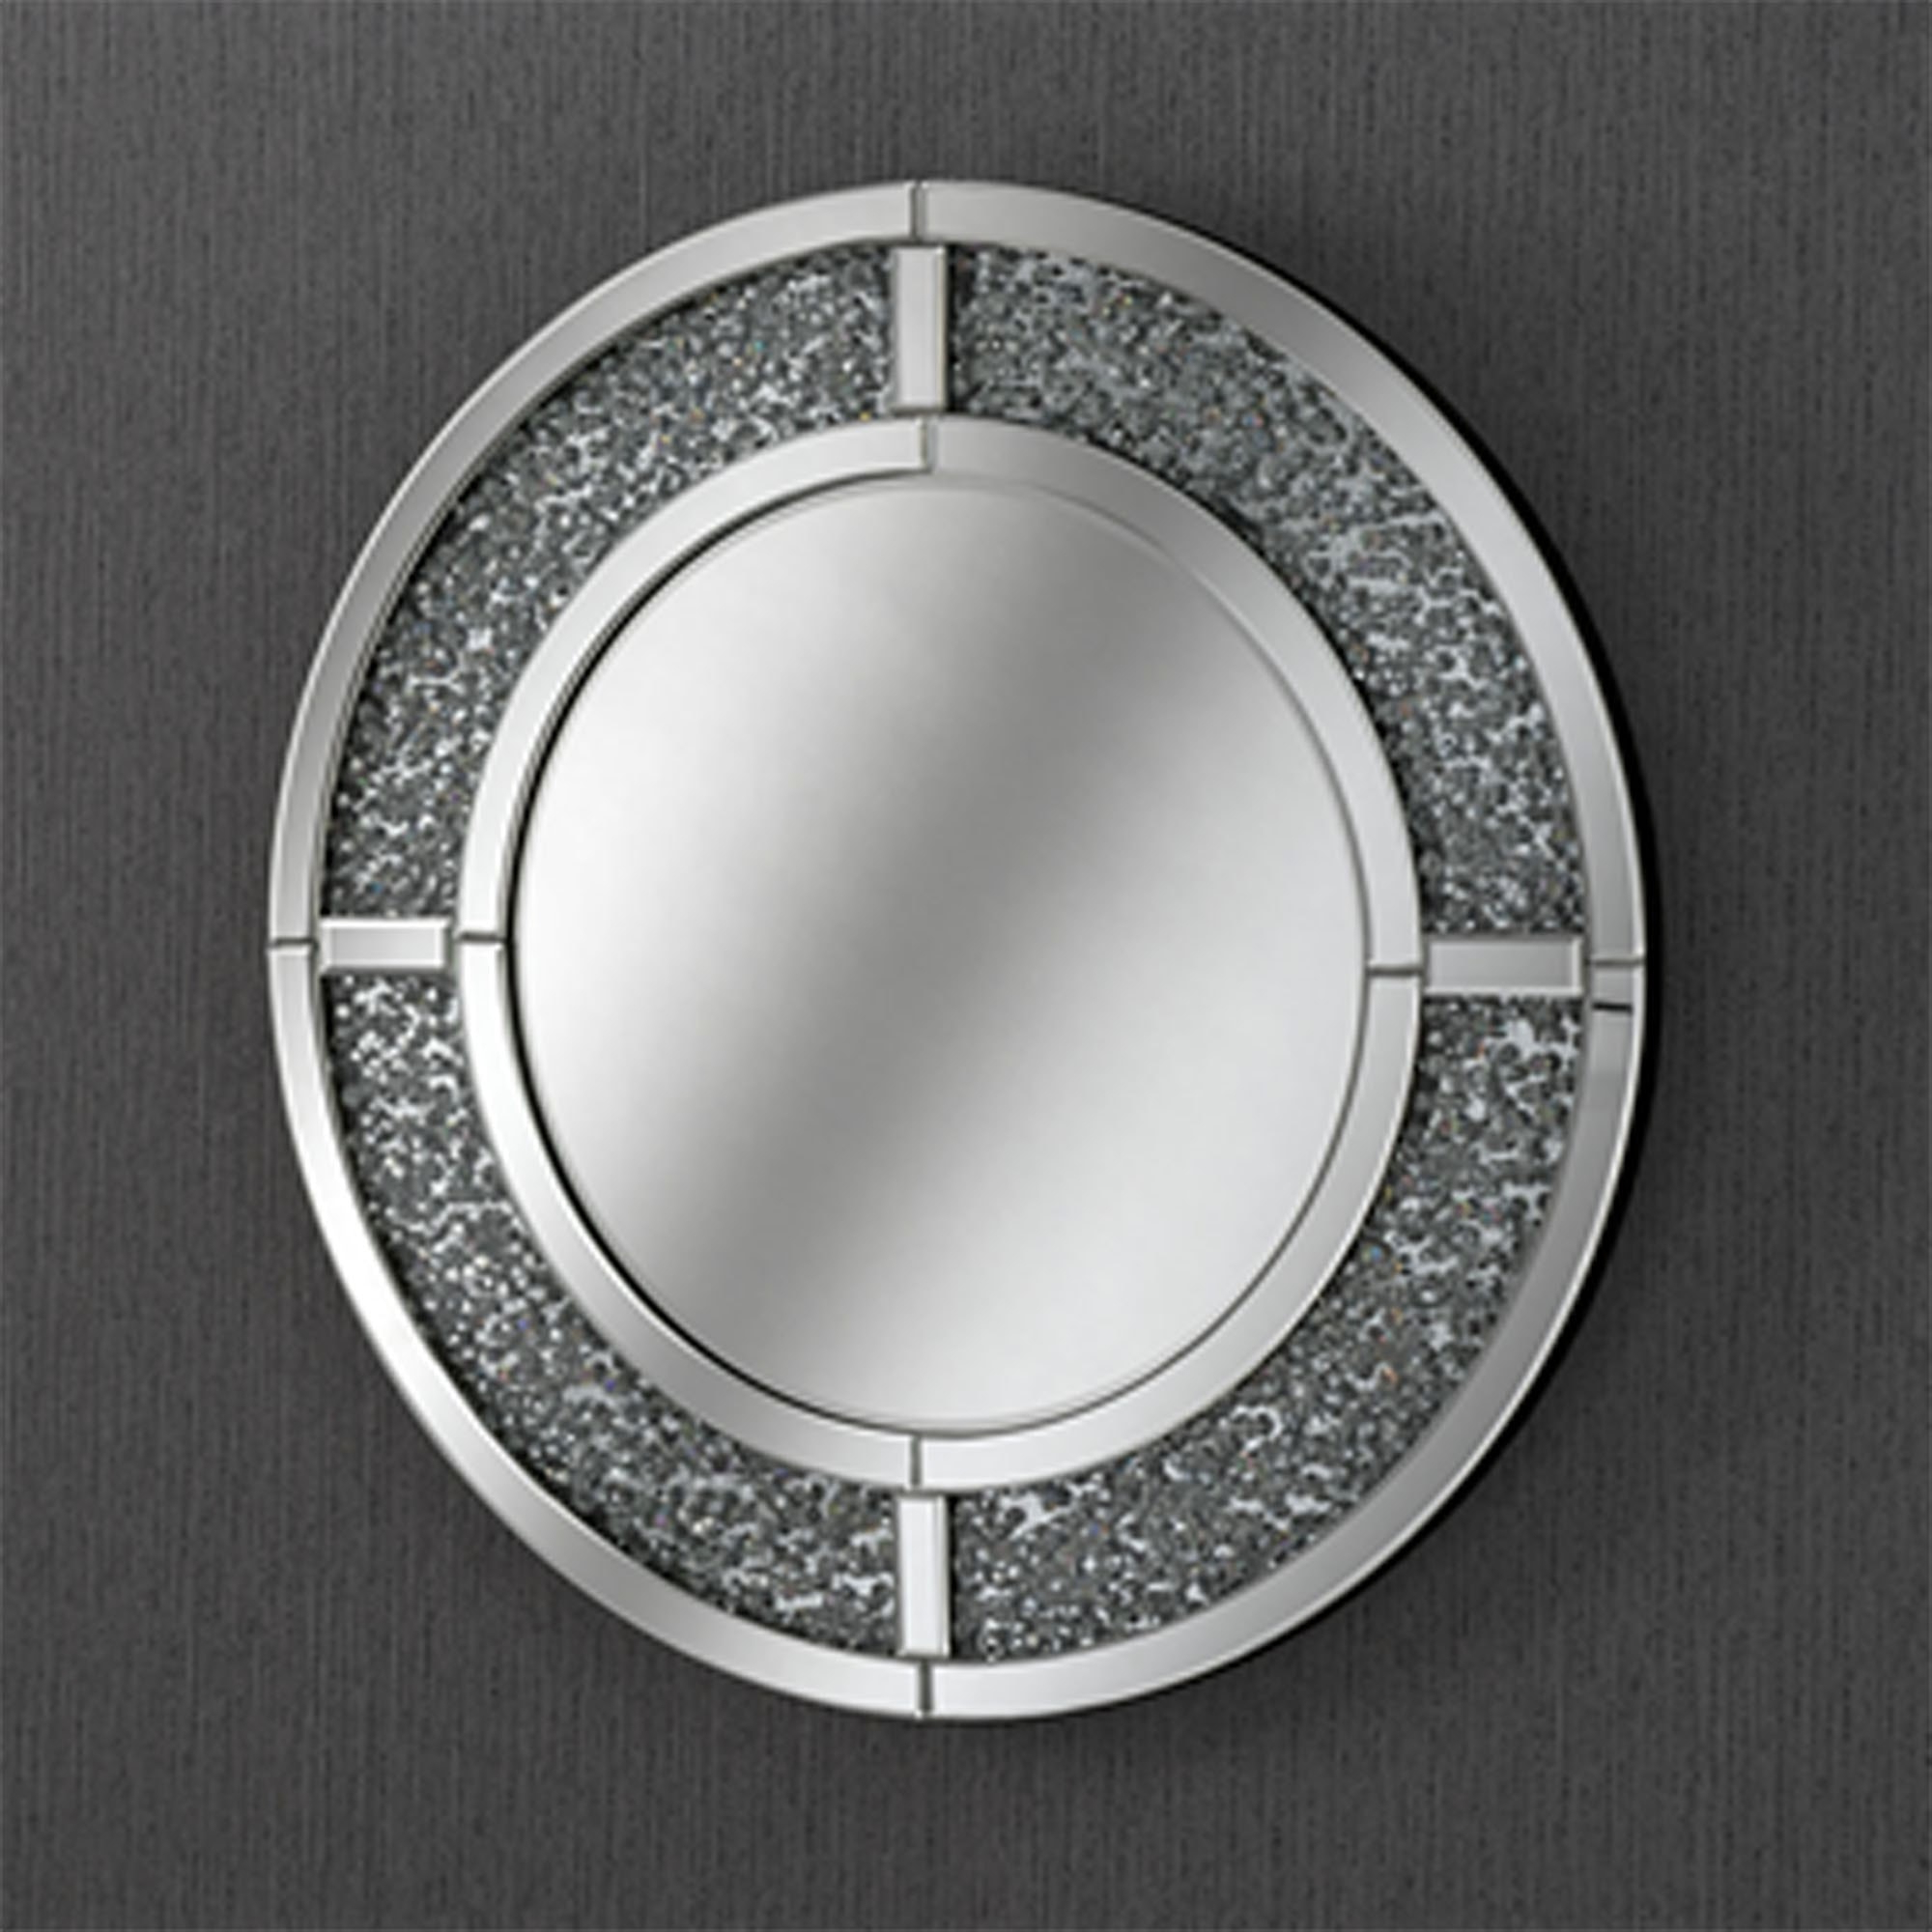 Crystal Crush Contemporary Wall Mirror Inside Fashionable Contemporary Wall Mirrors (View 20 of 20)